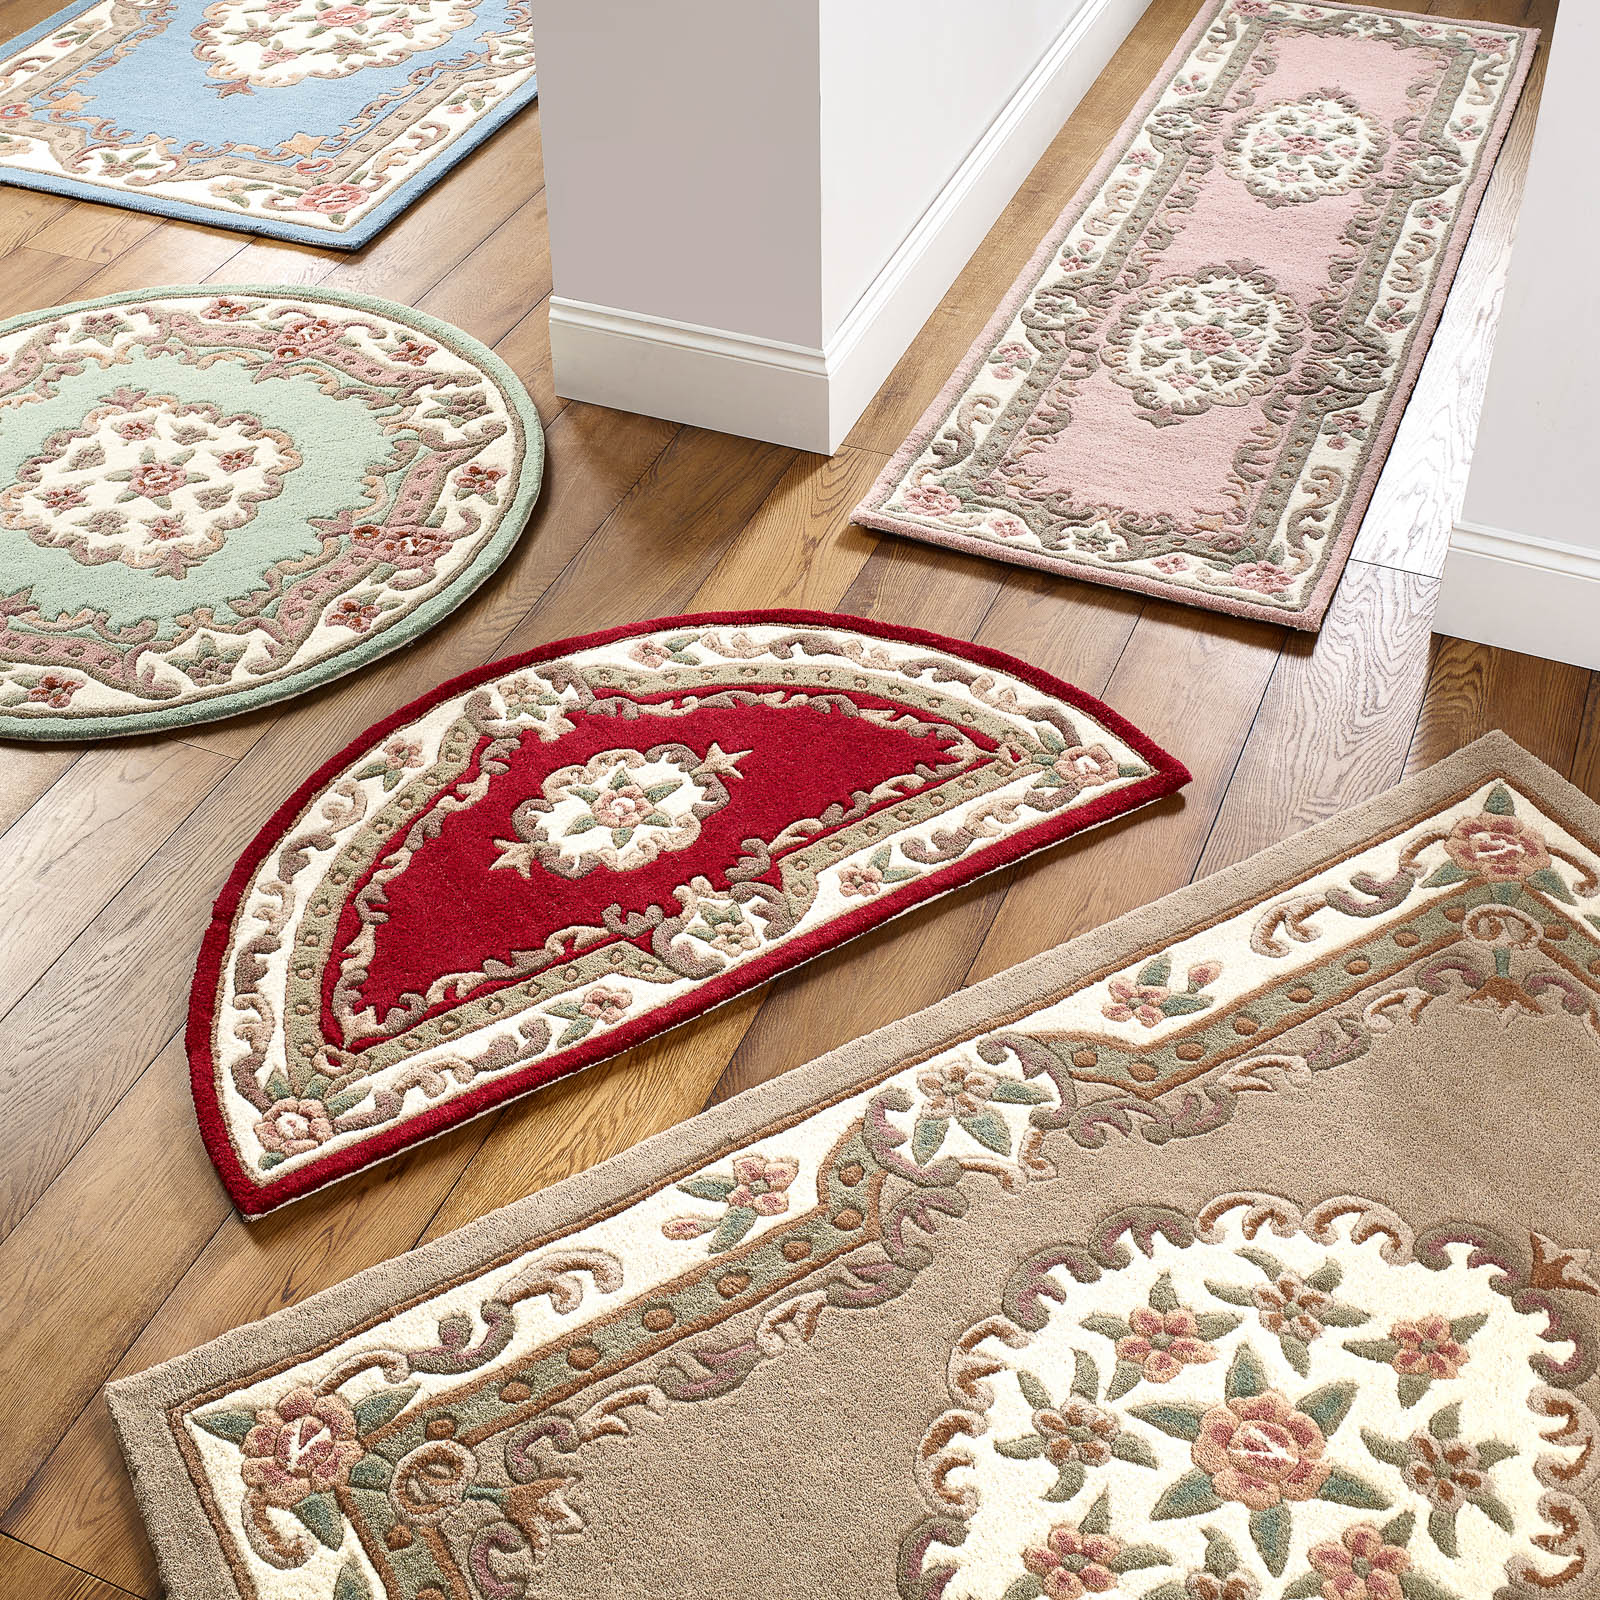 Accessorize Home Shensi Traditioinal Wool Rugs in Beige